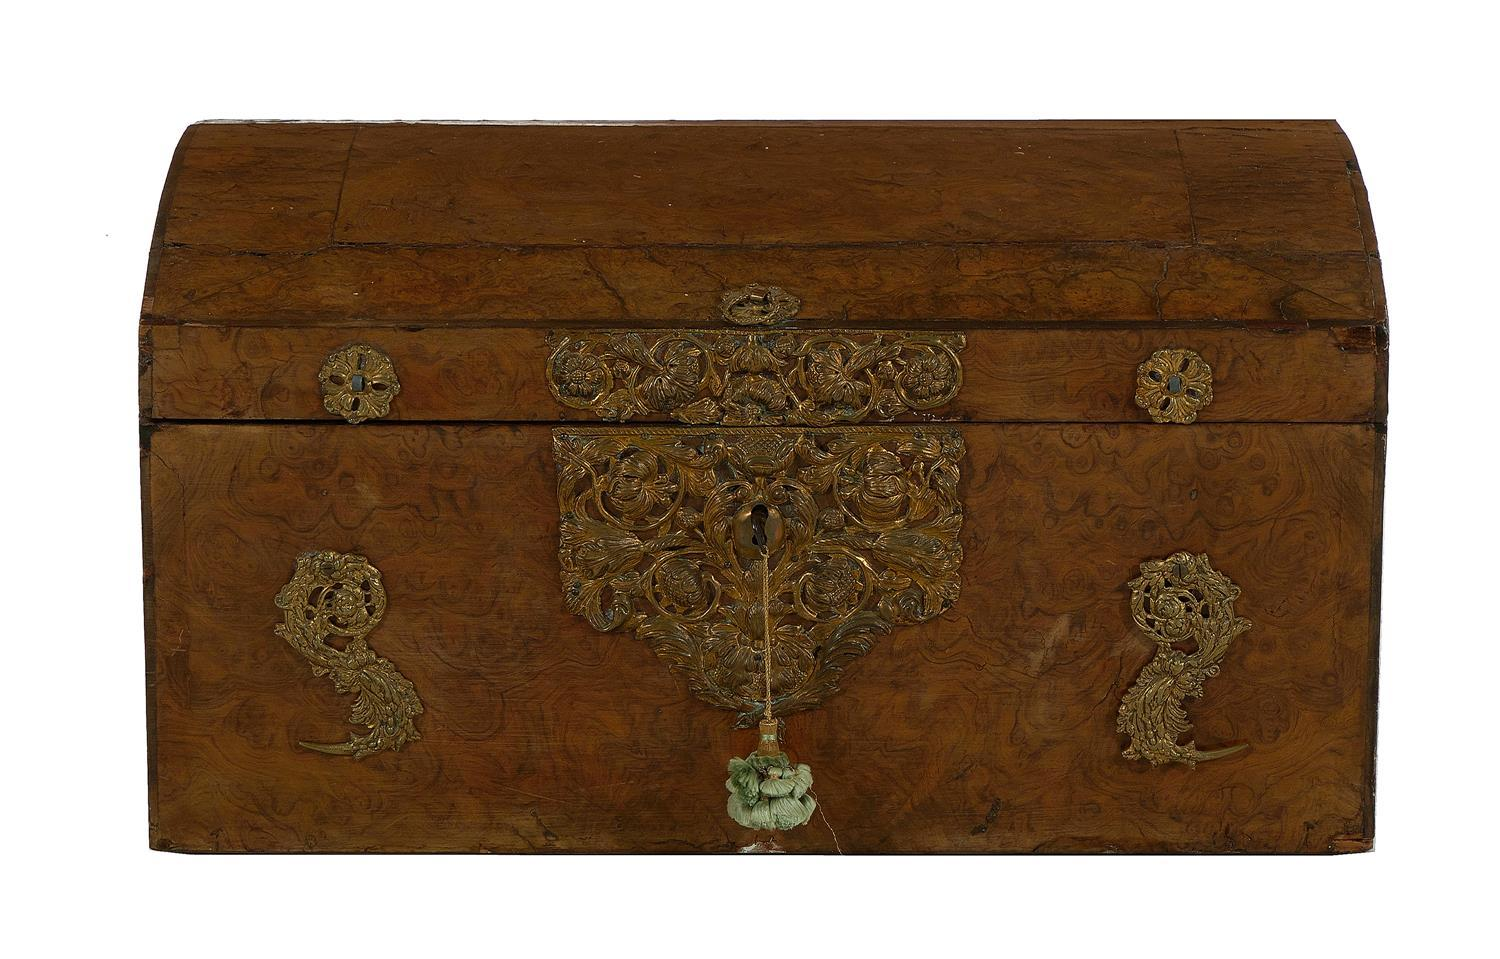 Dutch brass-mounted burl-wood trunk